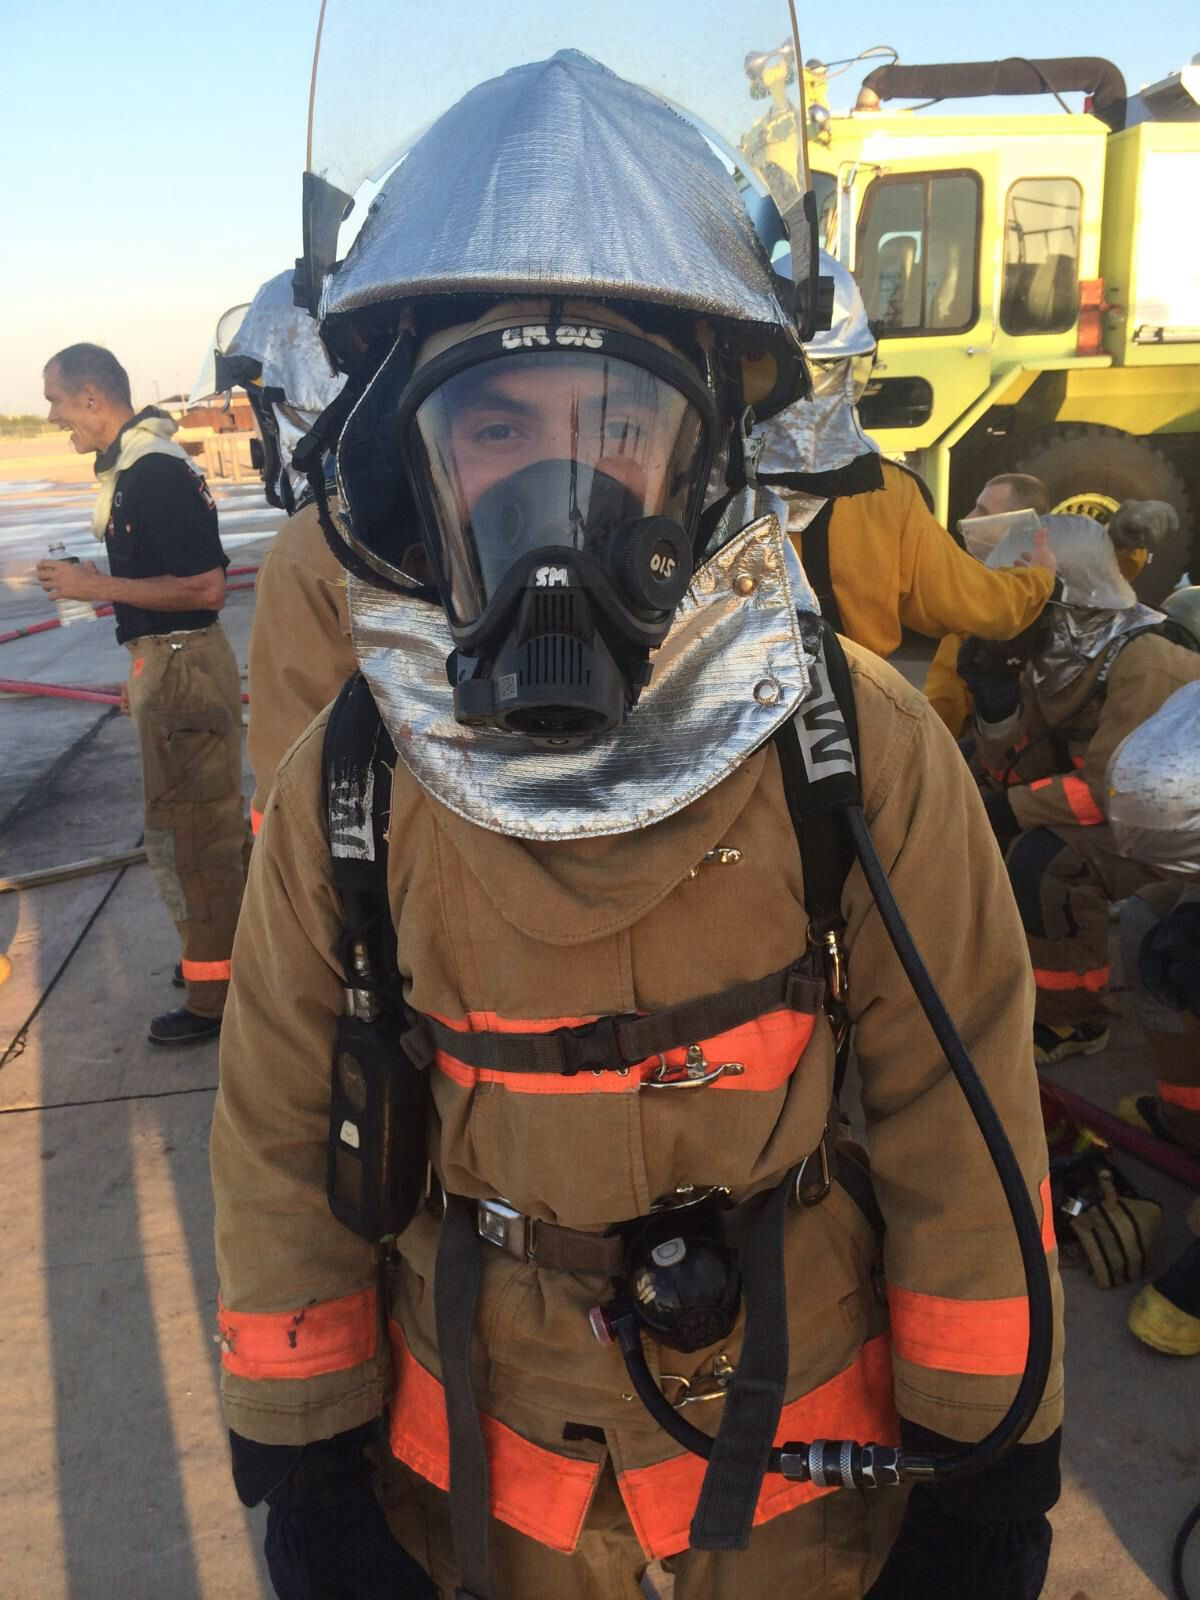 firefighter training marine corps goodfellow air force base 8 2014 my son